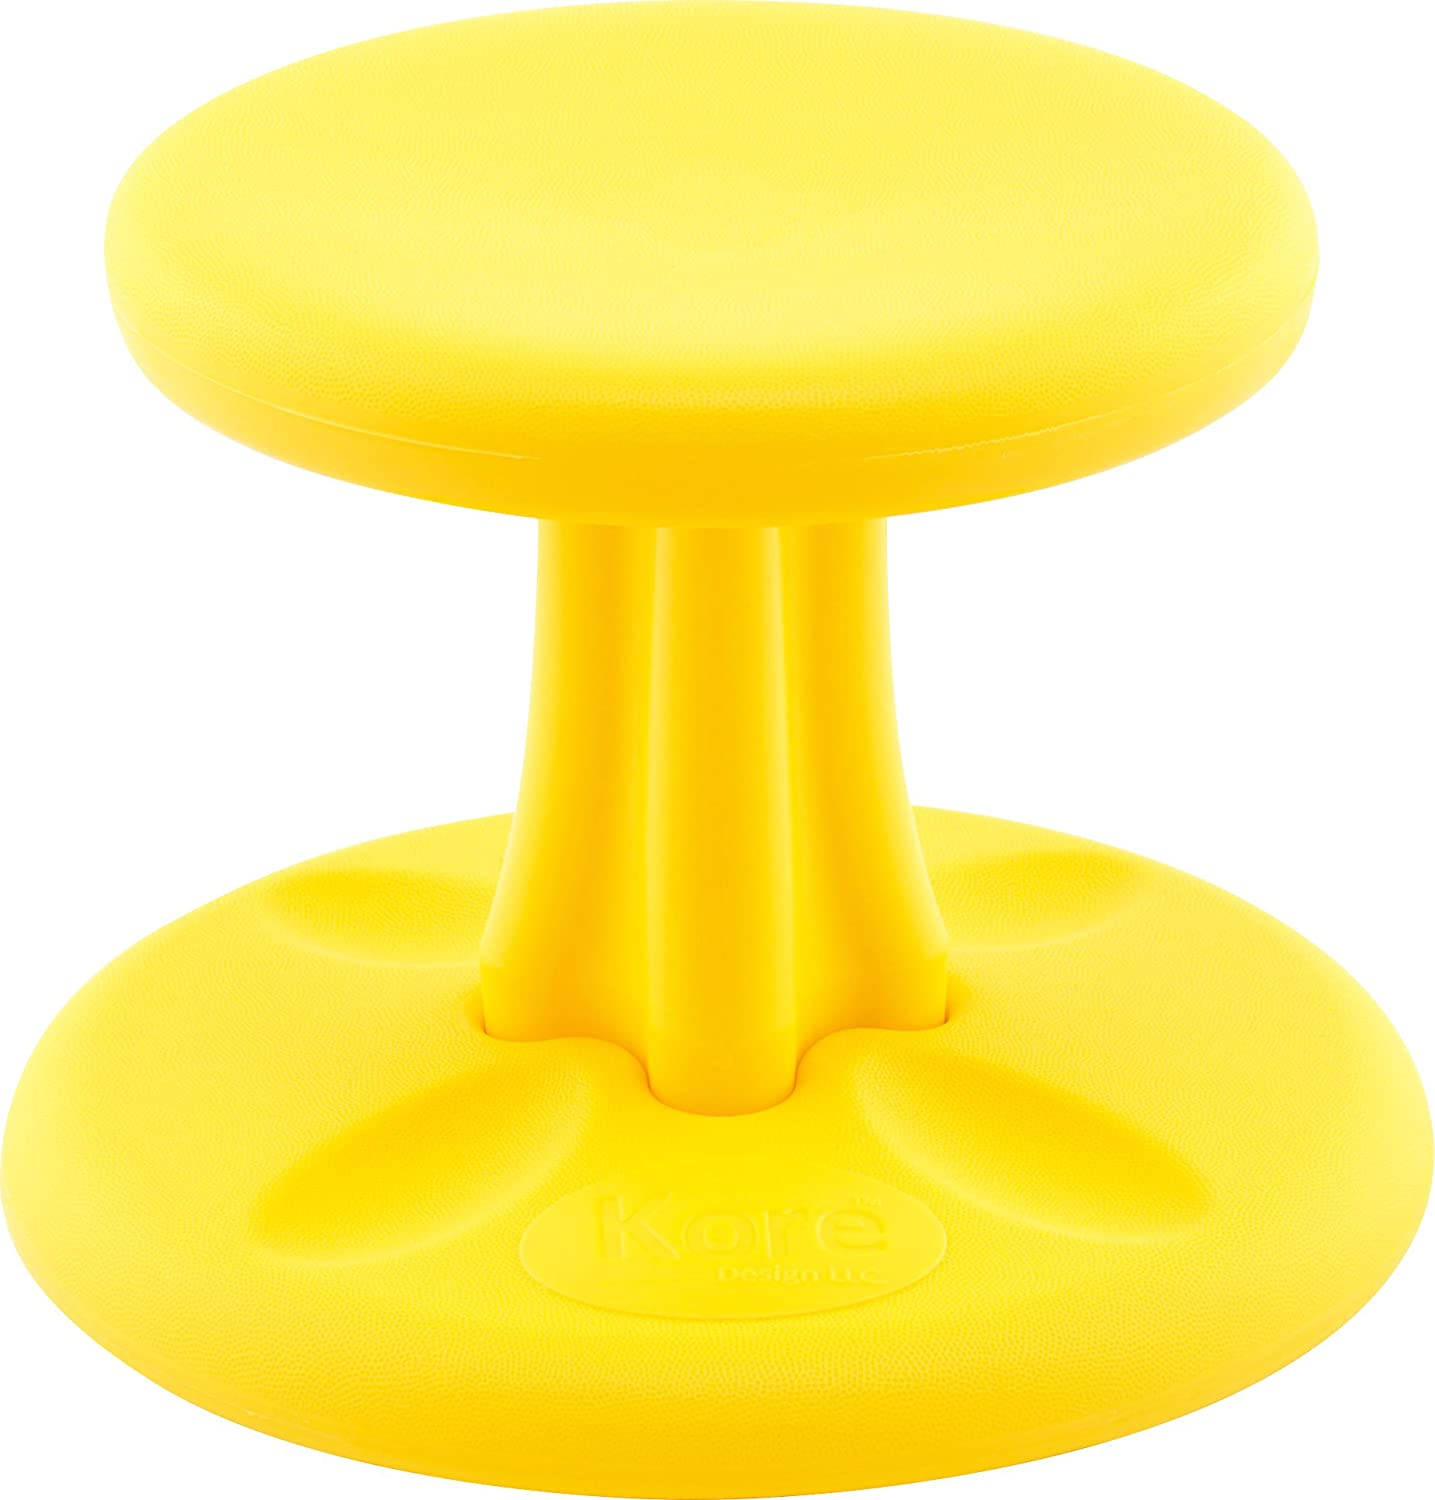 Kore Wobble Chair - Flexible Seating Stool for Toddlers, Age Range 2-3, Now with Antimicrobial Protection - Yellow (10in Tall)